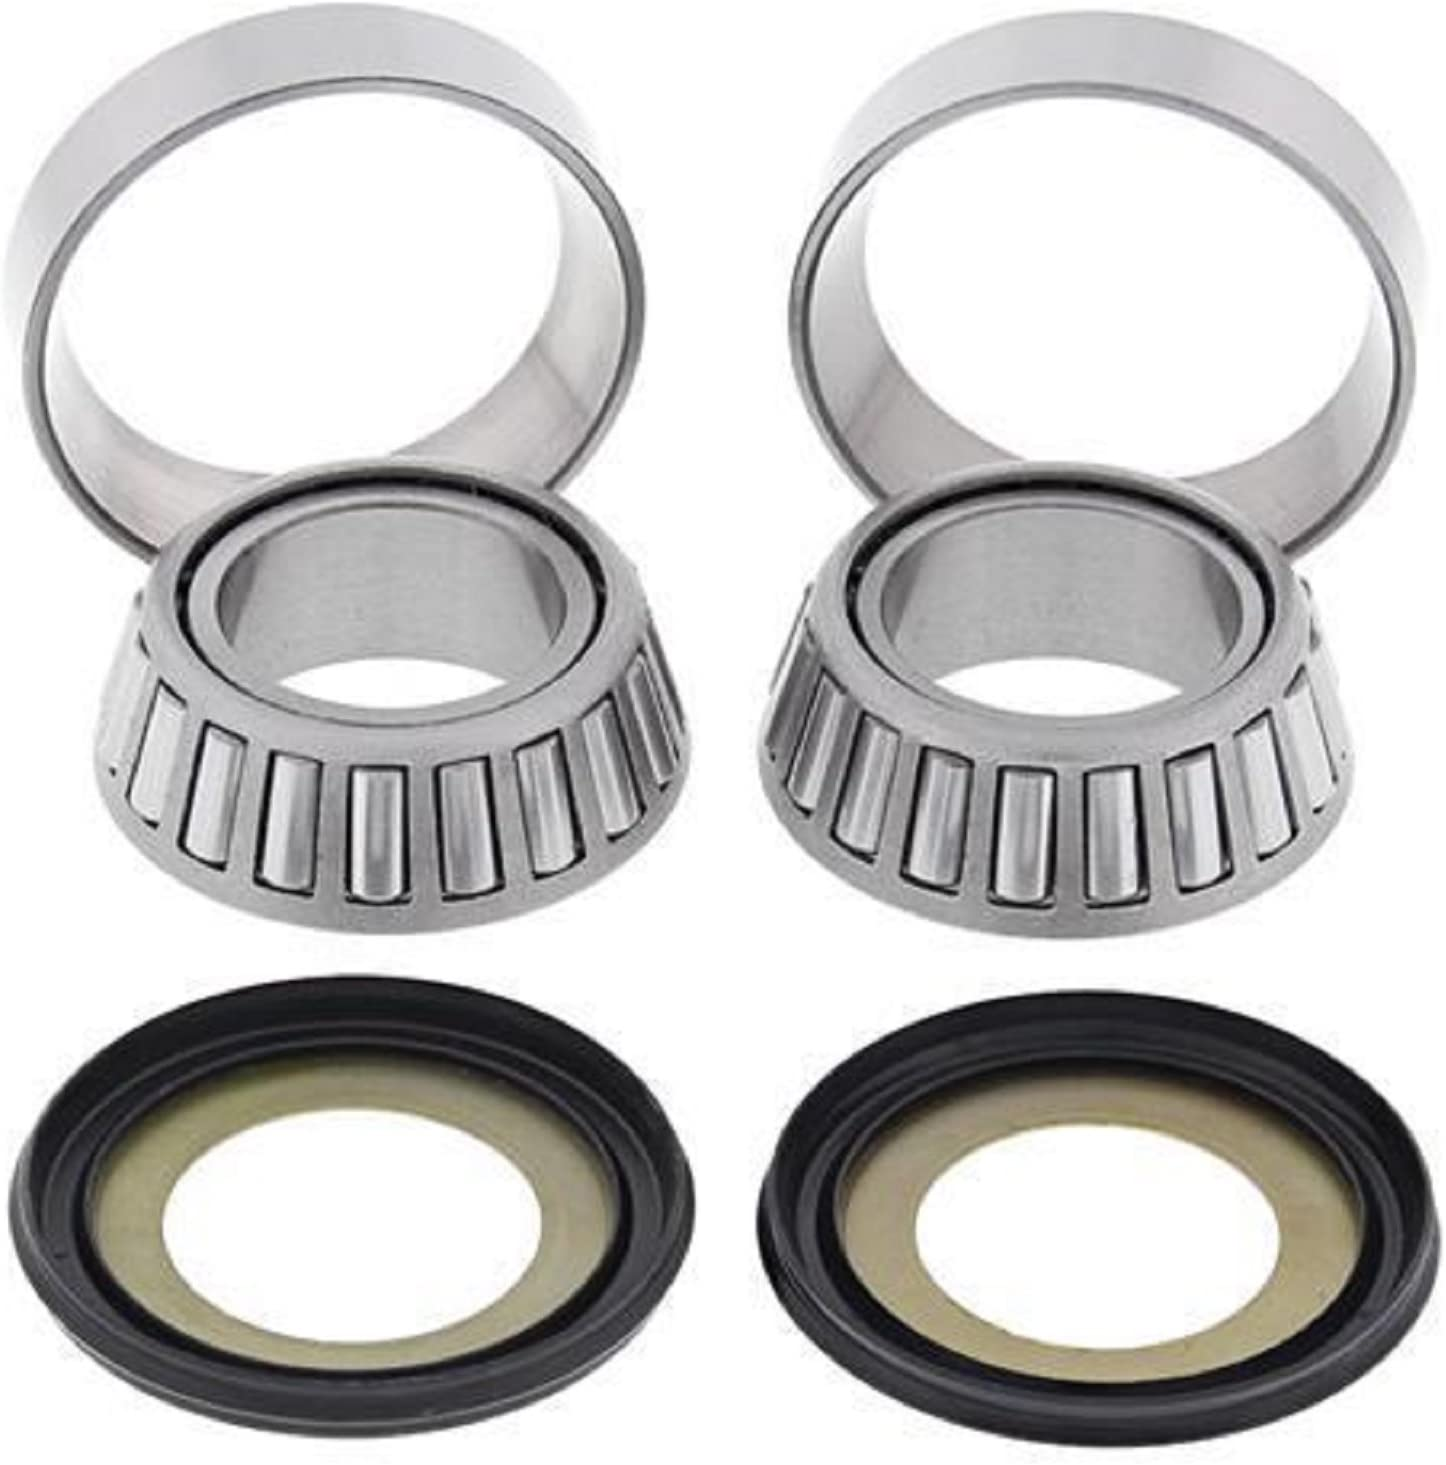 Manufacturer: ALL BALLS VPN: 22-1004-AD STEERING BEARING KIT Part Number: AB221004-AD Condition: New